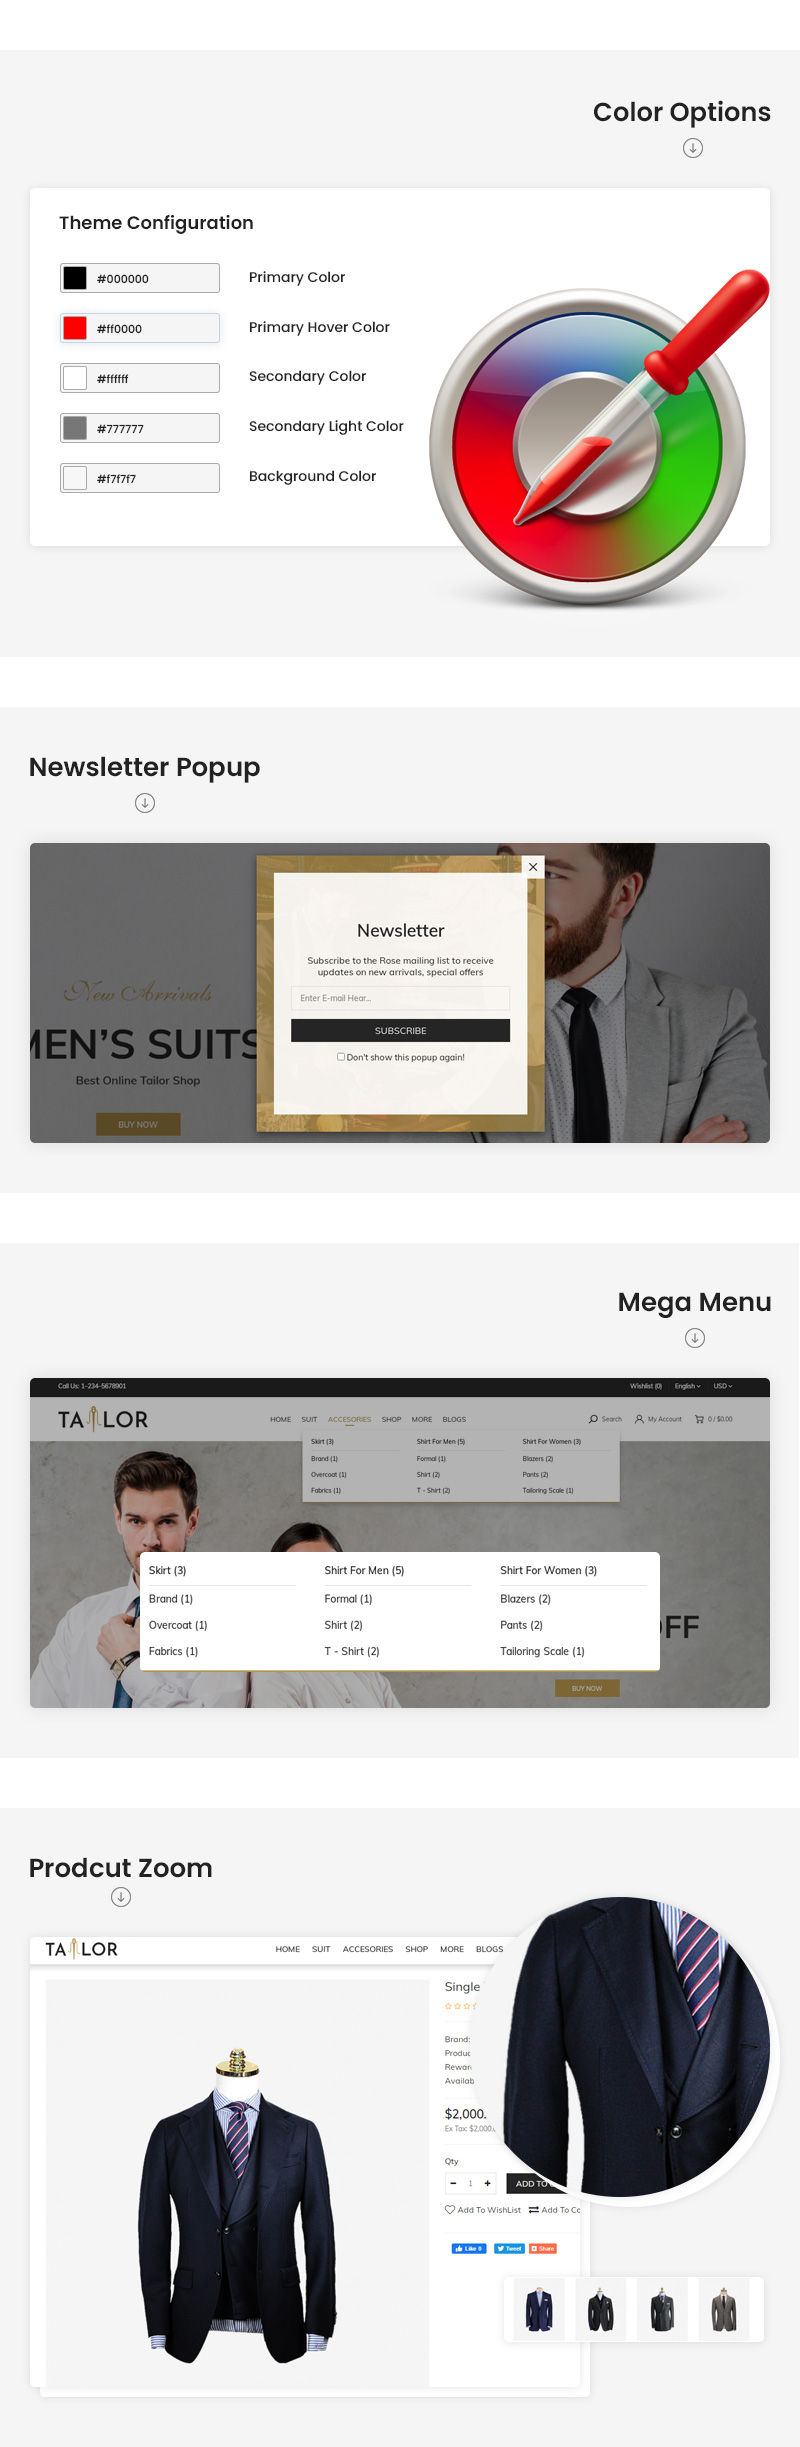 tailor-features-3.jpg